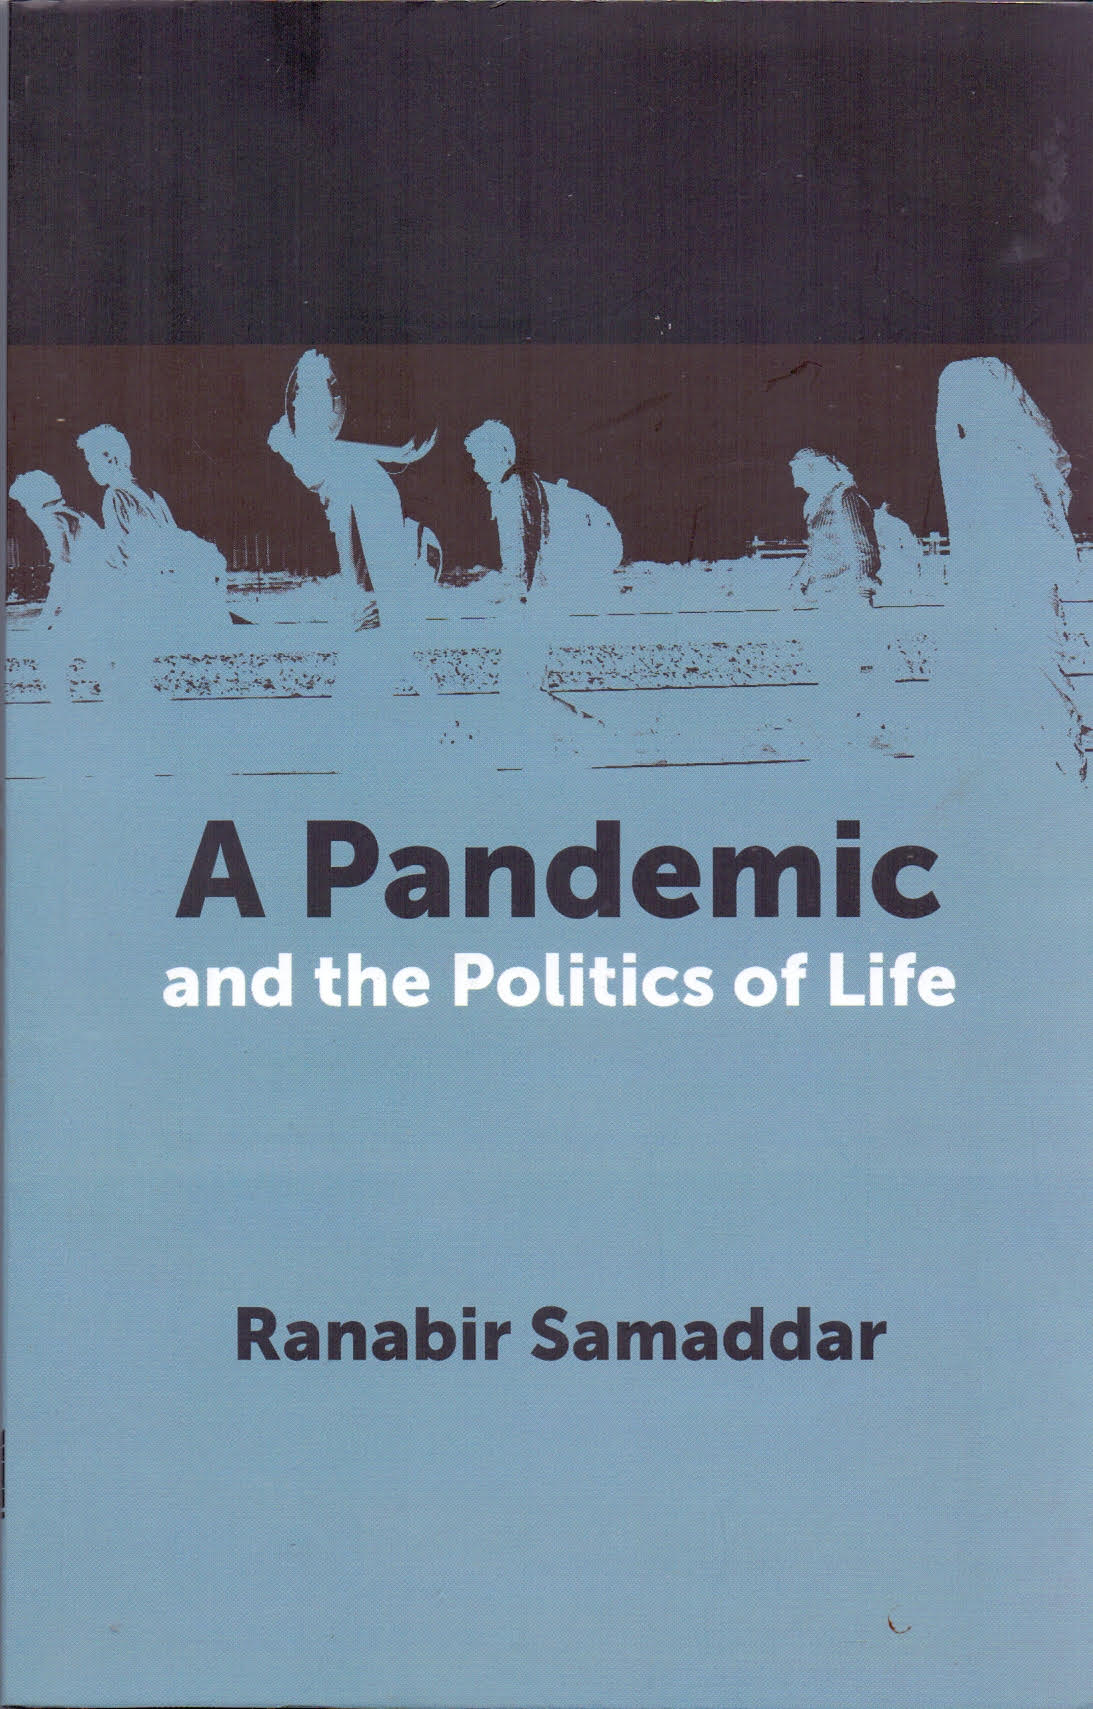 A Pandemic and the Politics of Life